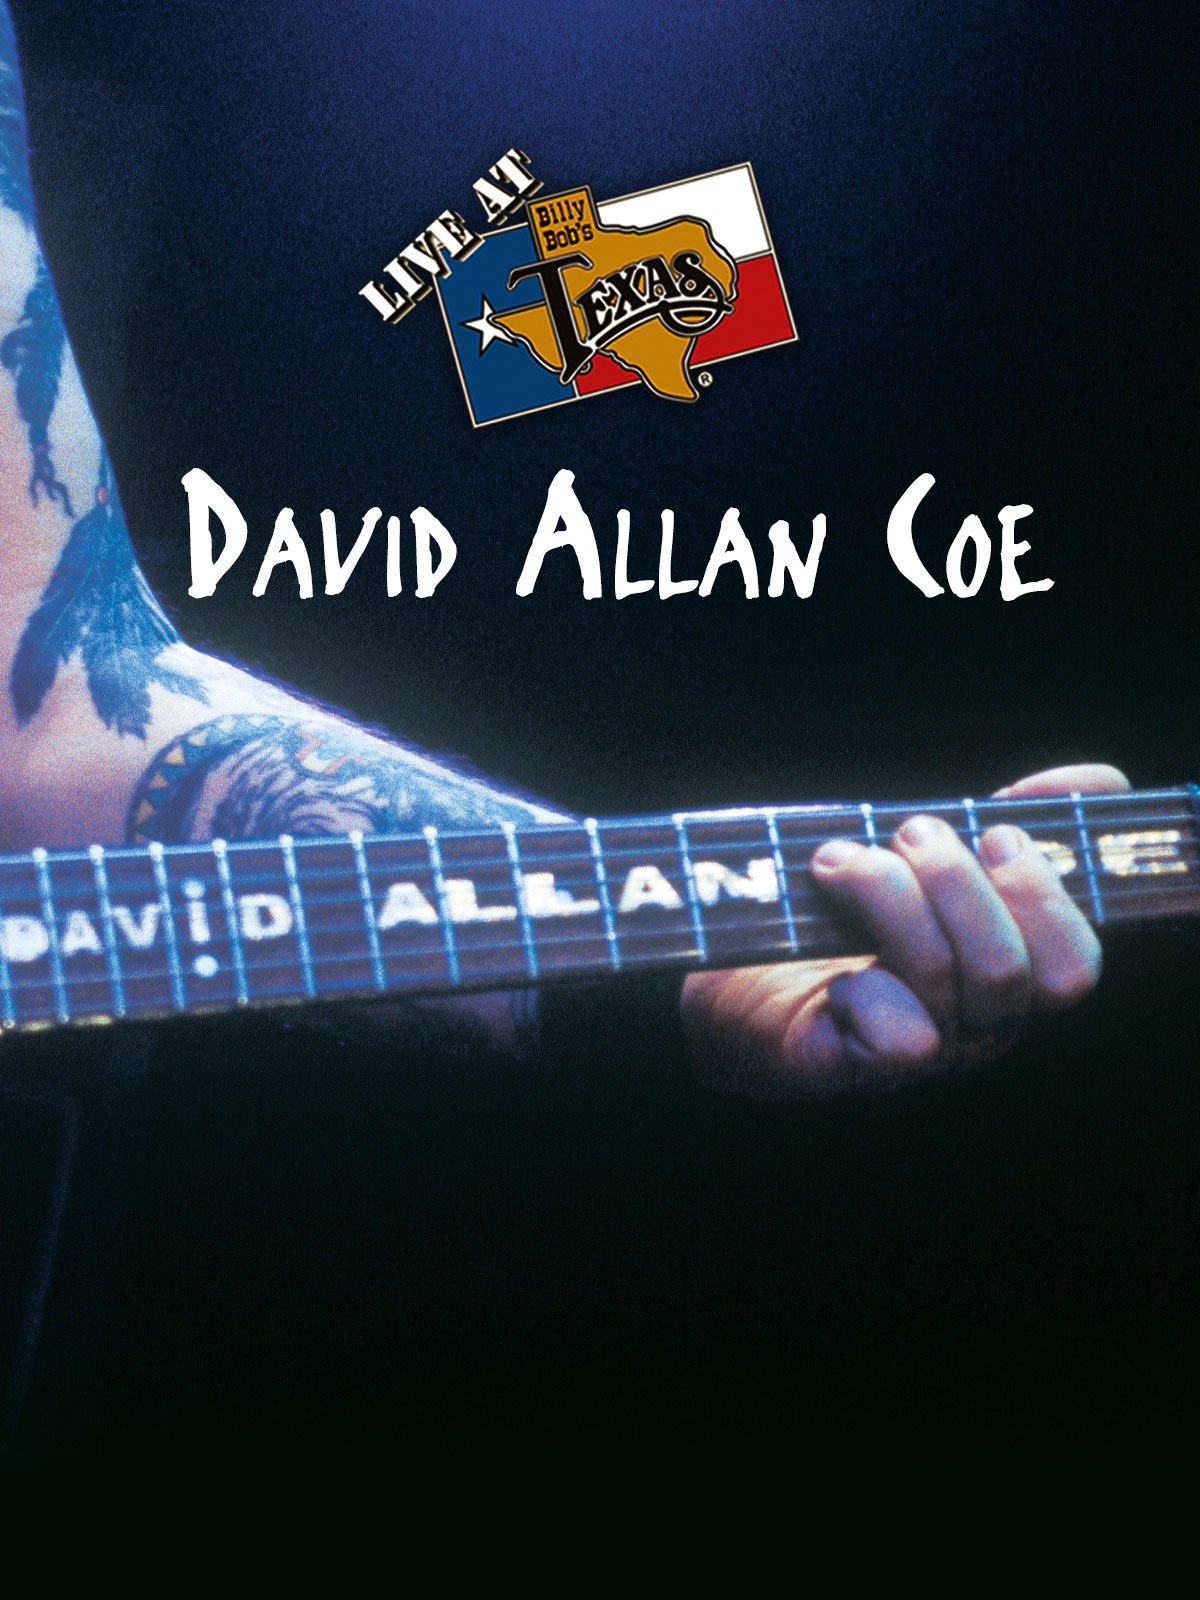 Live at Billy Bob's Texas: David Allan Coe on Amazon Prime Instant Video UK